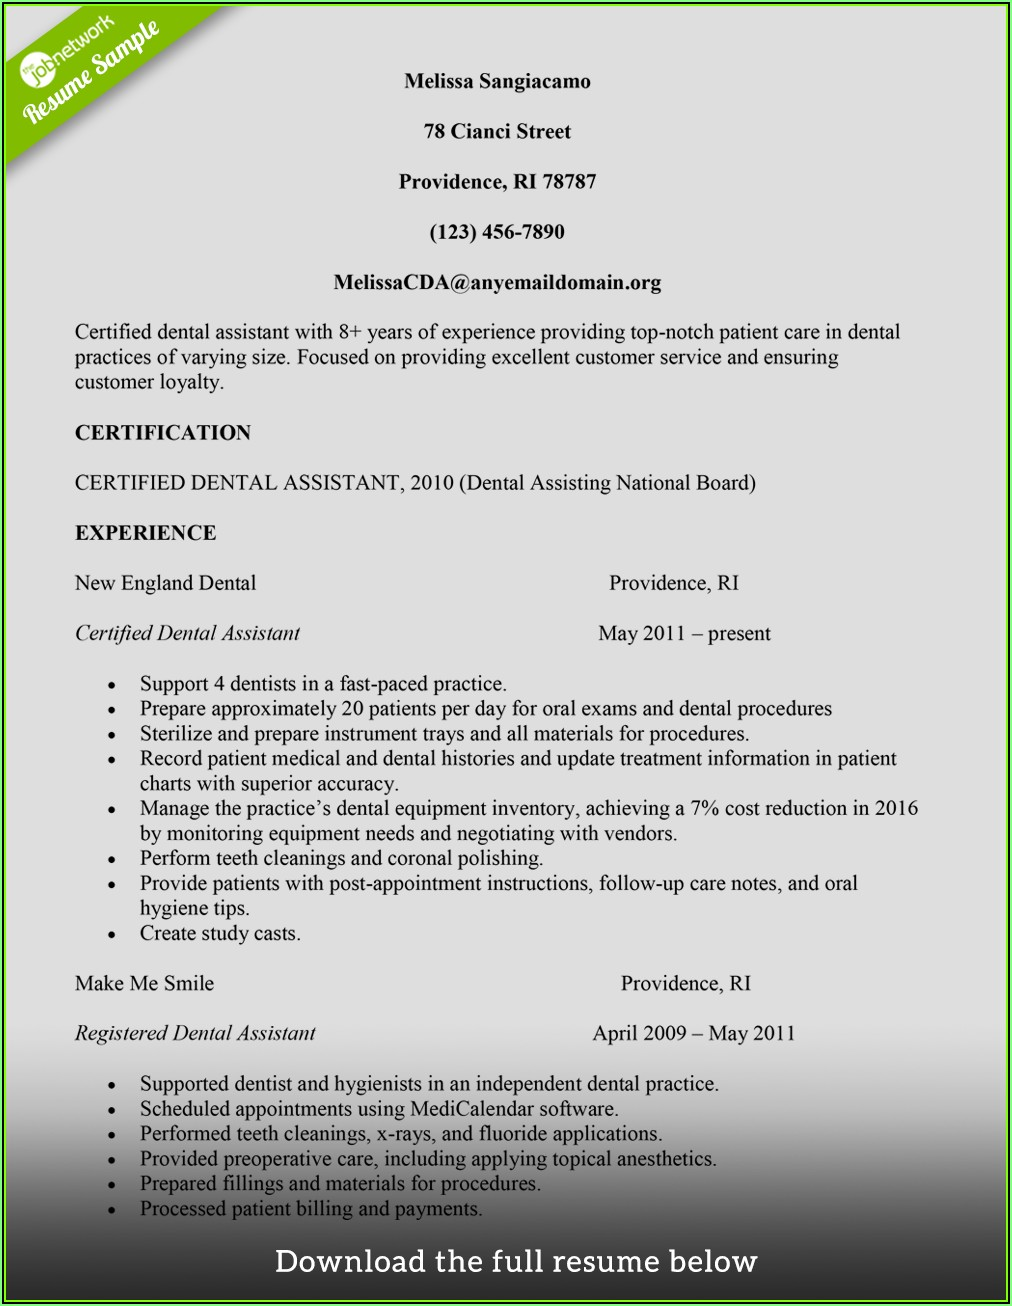 Resumes For Dental Assistants With No Experience